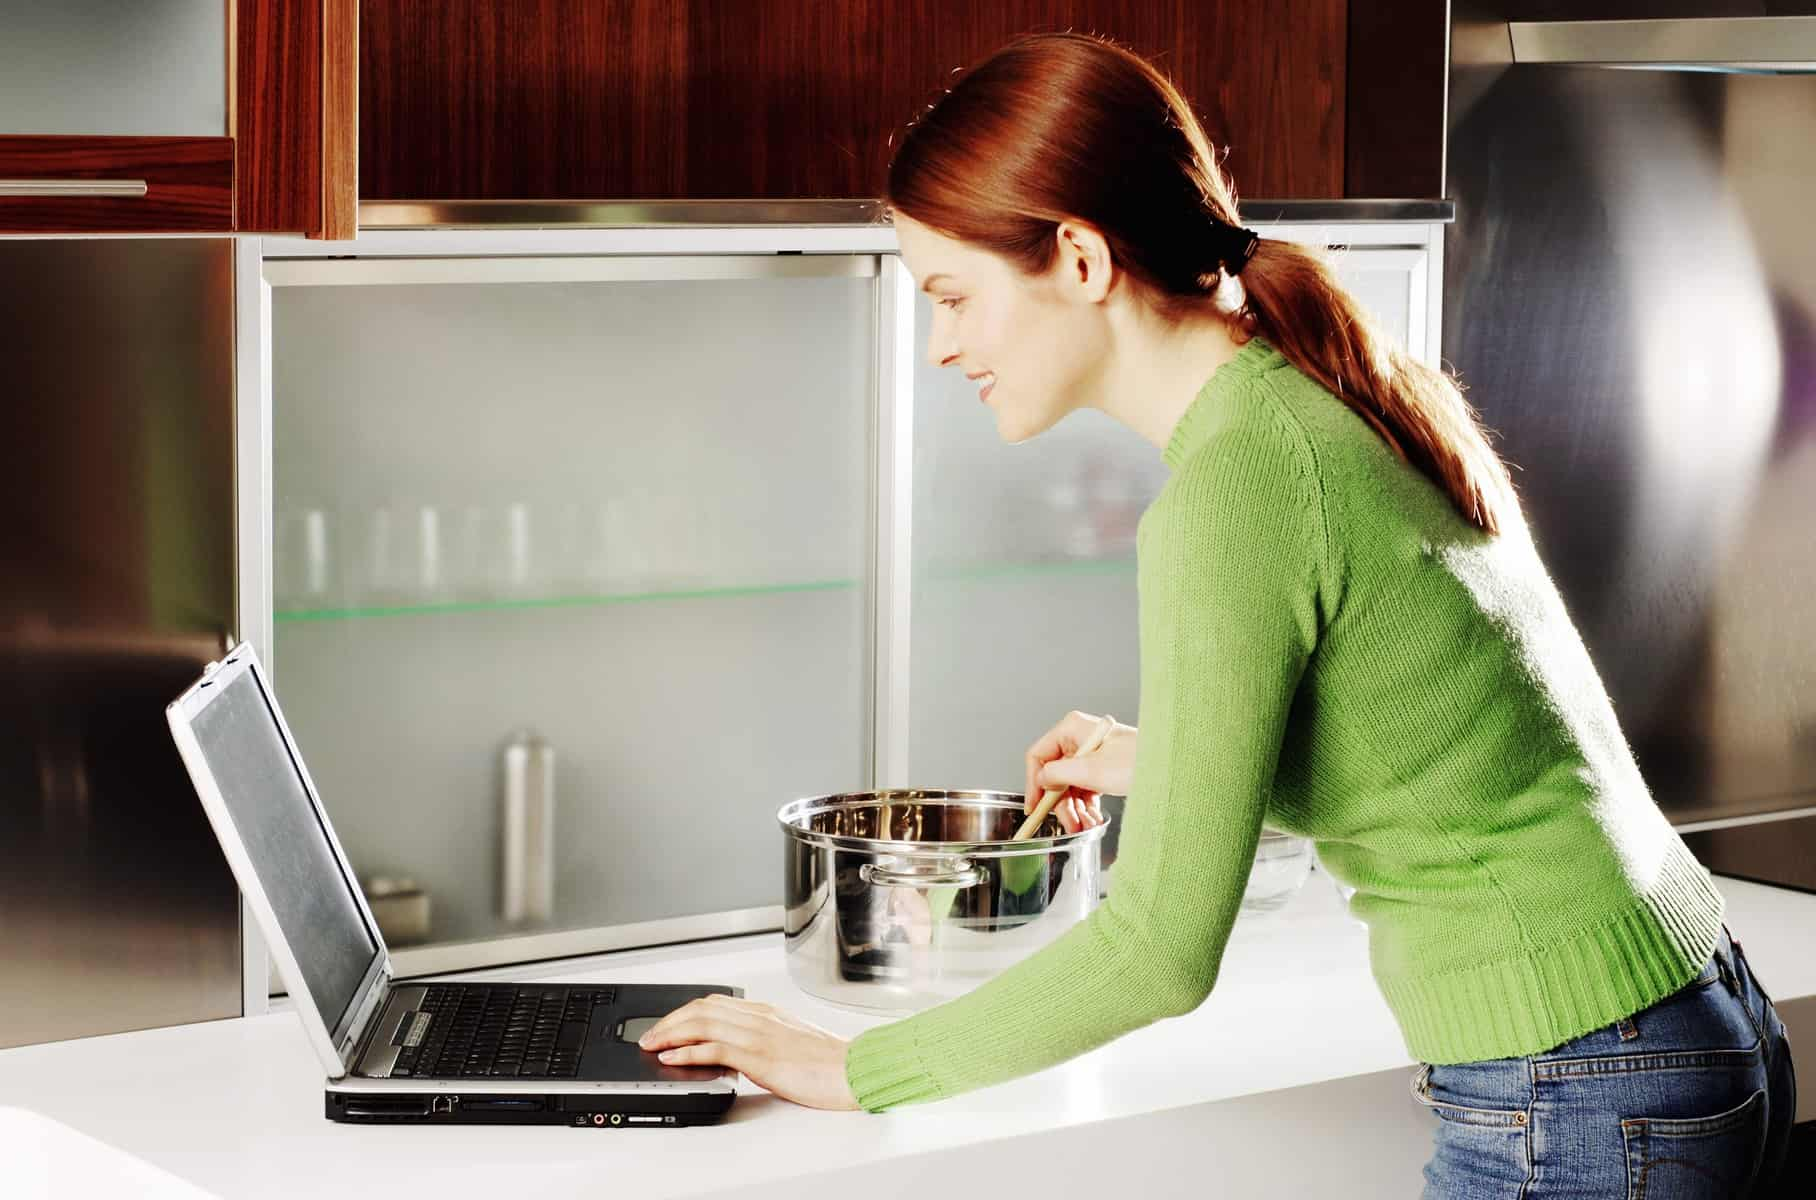 online jobs for homemakers - Woman using laptop while cooking in the kitchen